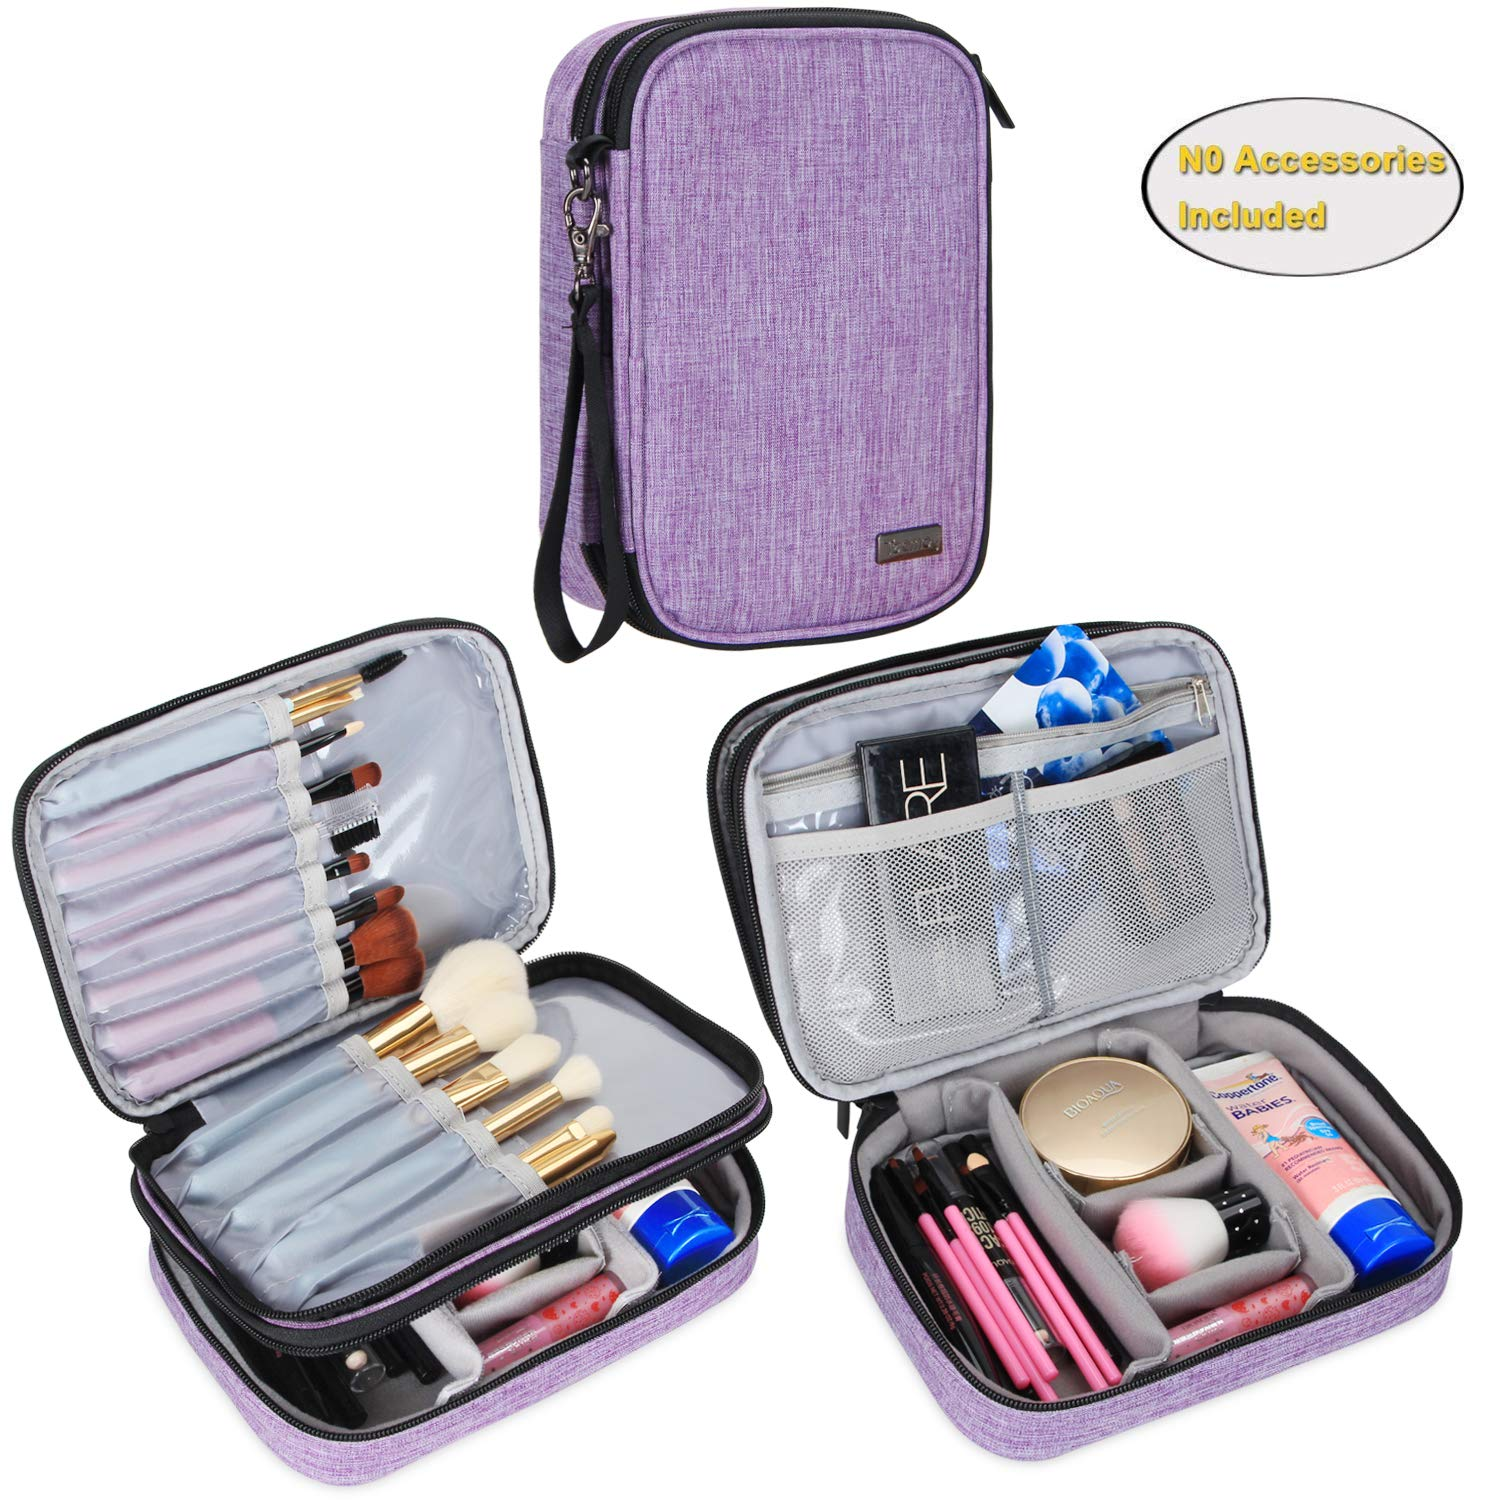 "Teamoy Travel Makeup Brush Case(up to 8.8""), Professional Makeup Train Organizer Bag with Handle Strap for Makeup Brushes and Makeup Essentials-Medium, Purple(No Accessories Included)"